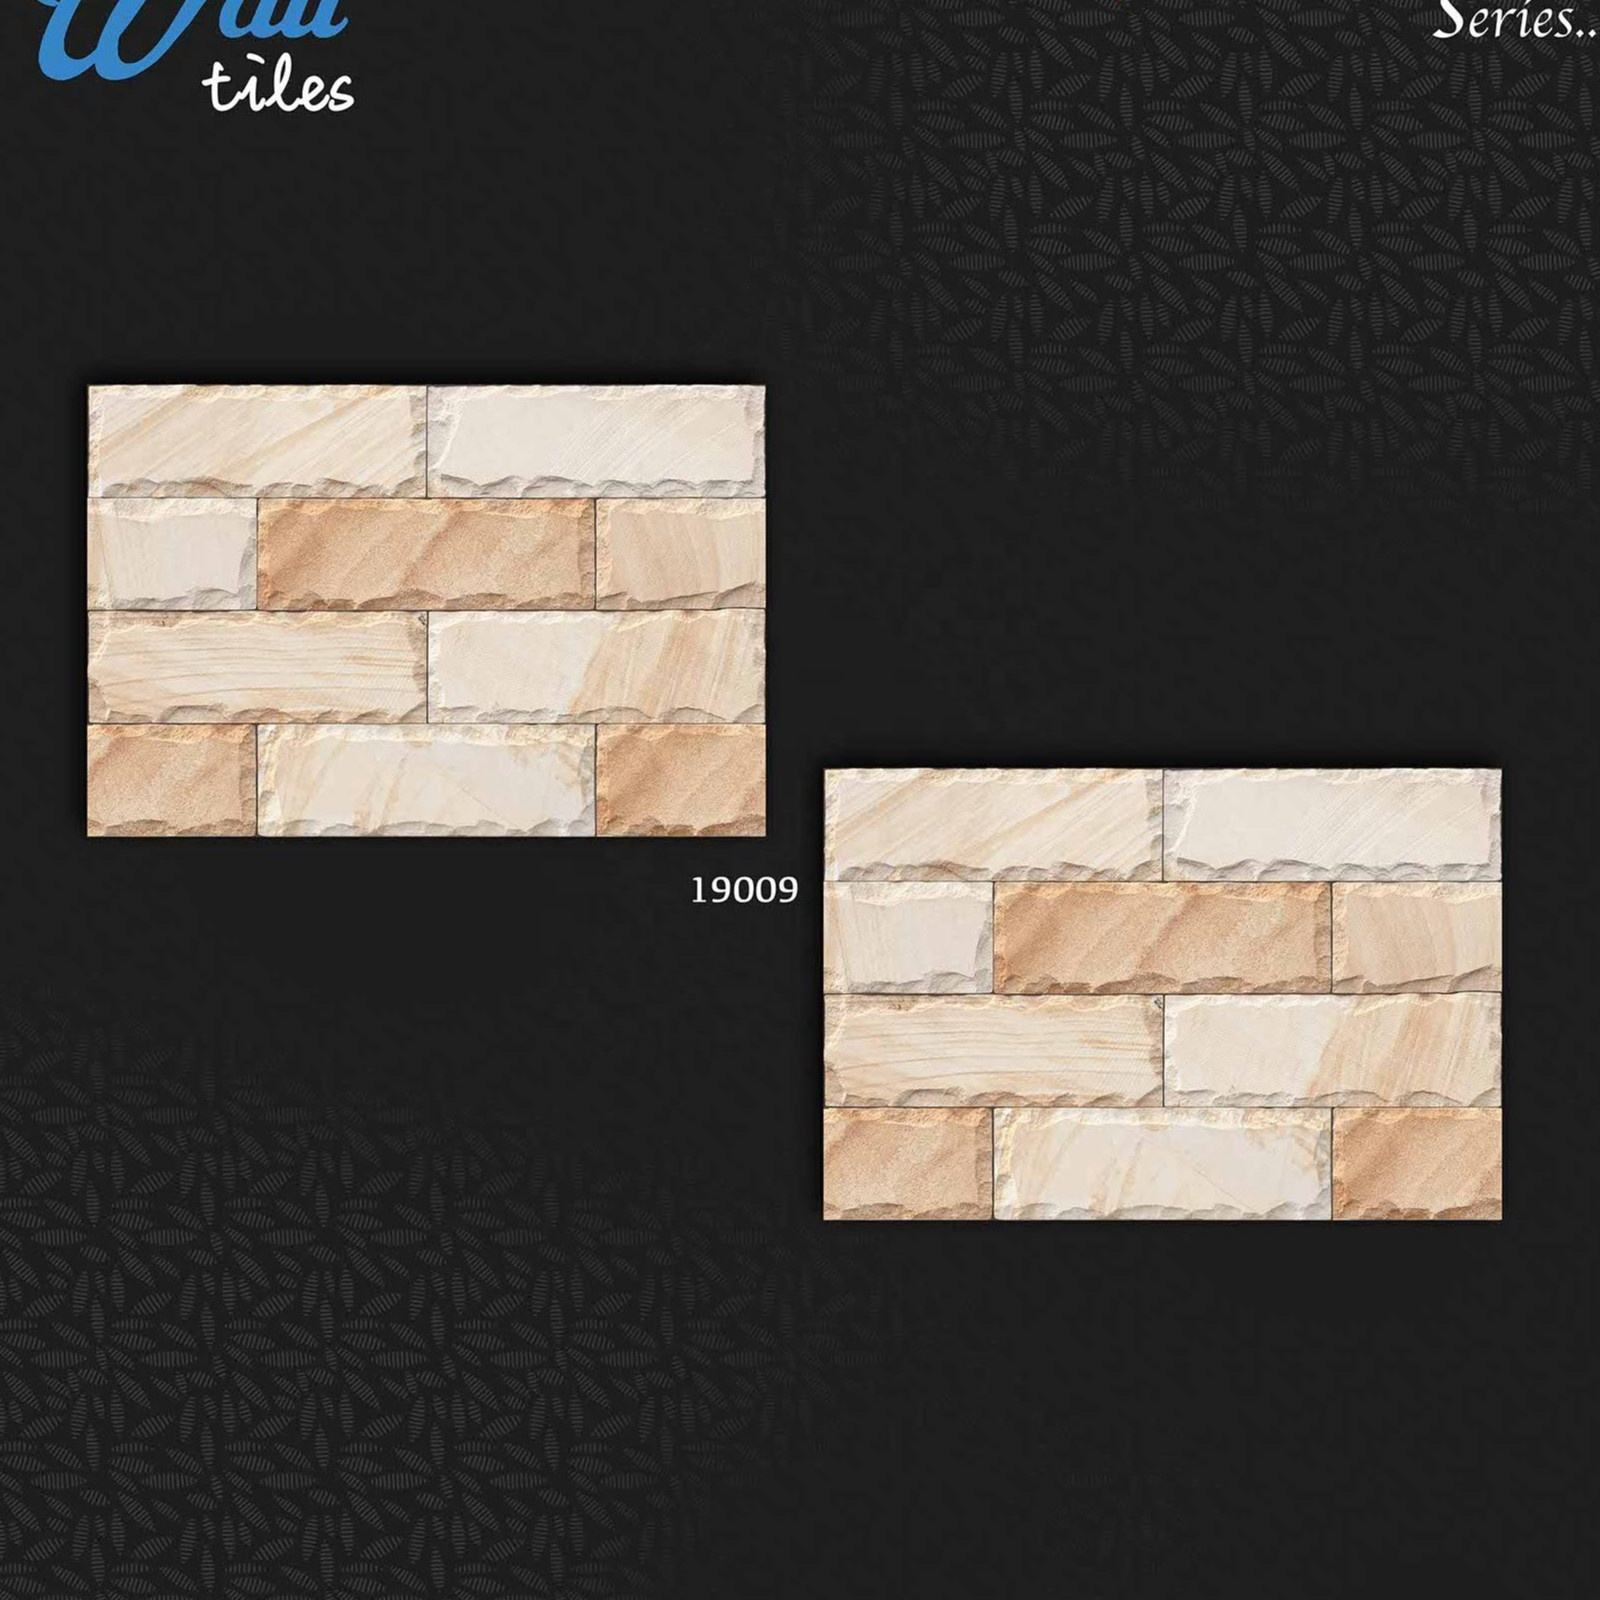 Brick Stone 3D Design Digital 30x45 cm Building Exterior 300x450 mm Ceramic elevation Outside 12x18 Tiles in Best Price India